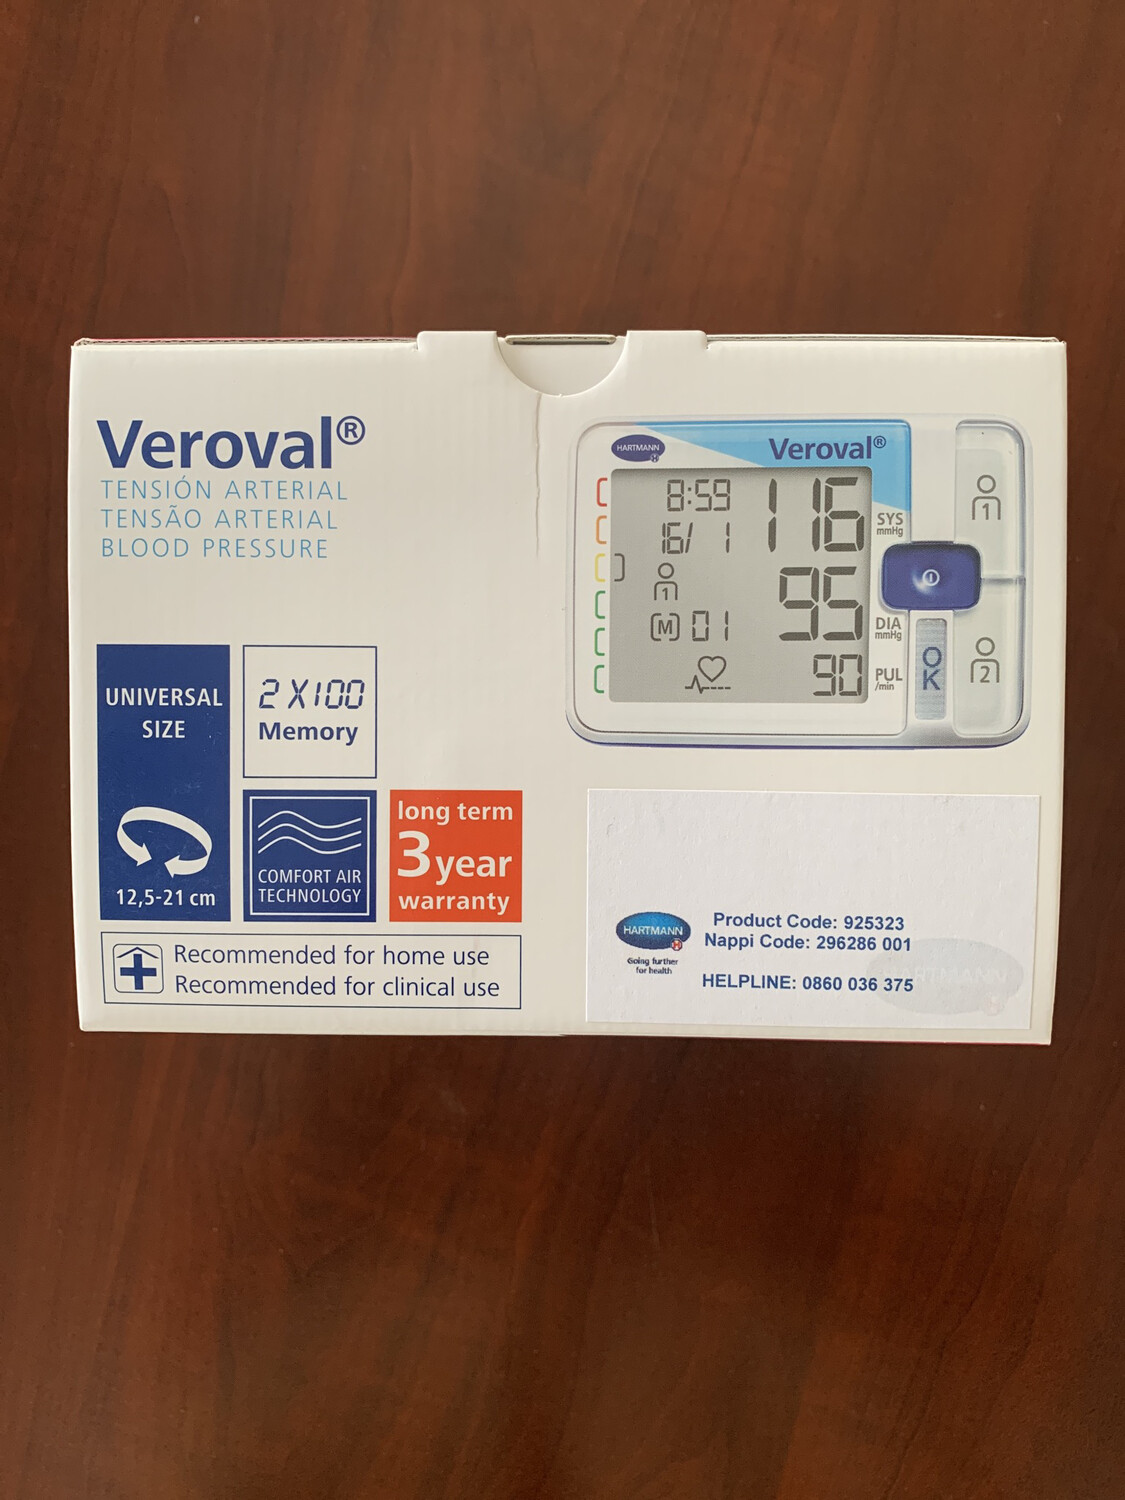 Veroval Electronic Blood Pressure App